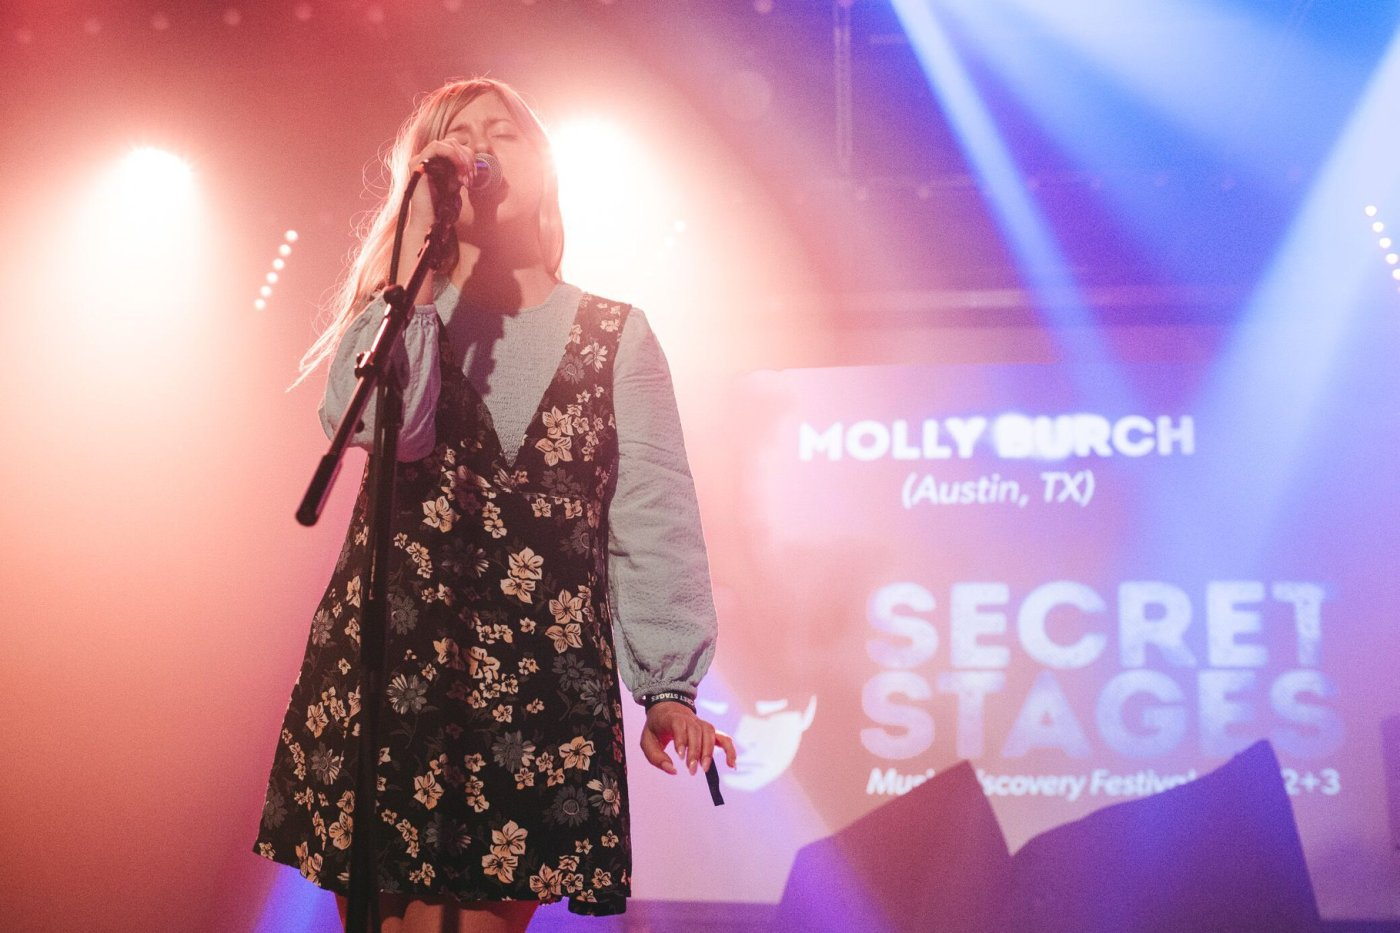 holly burch secret stages 2019